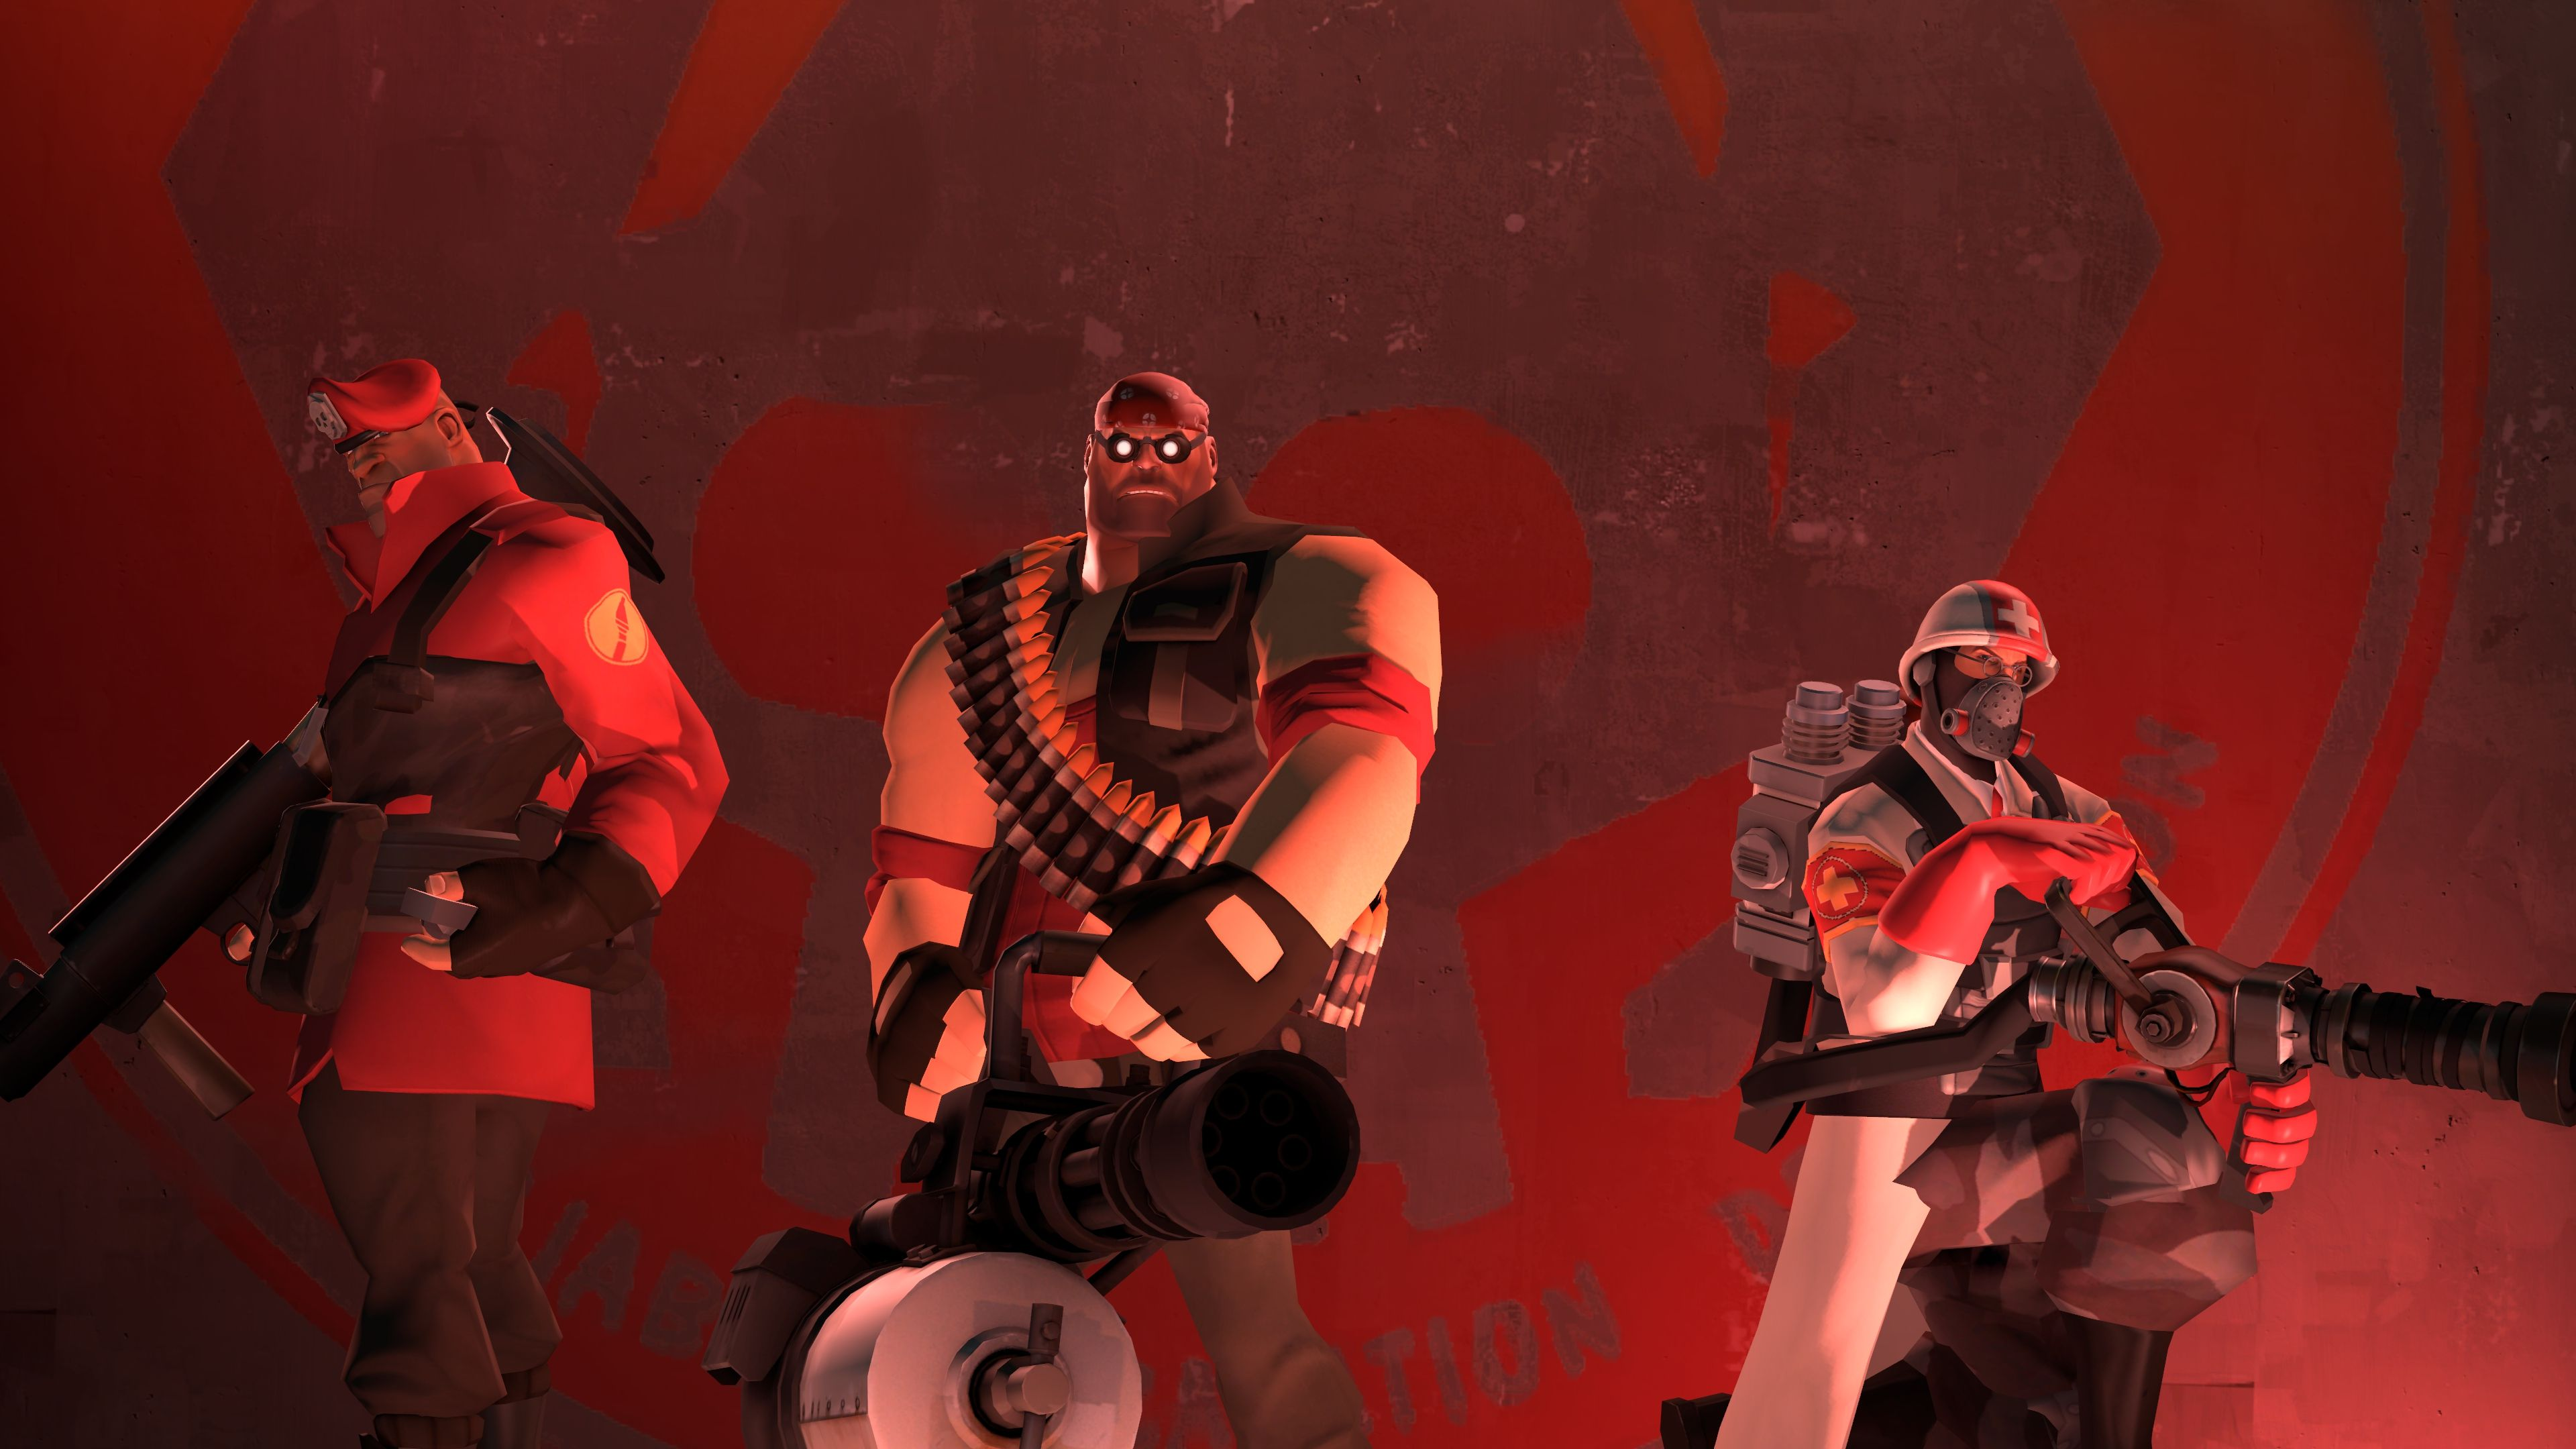 1440p team fortress 2 wallpapers